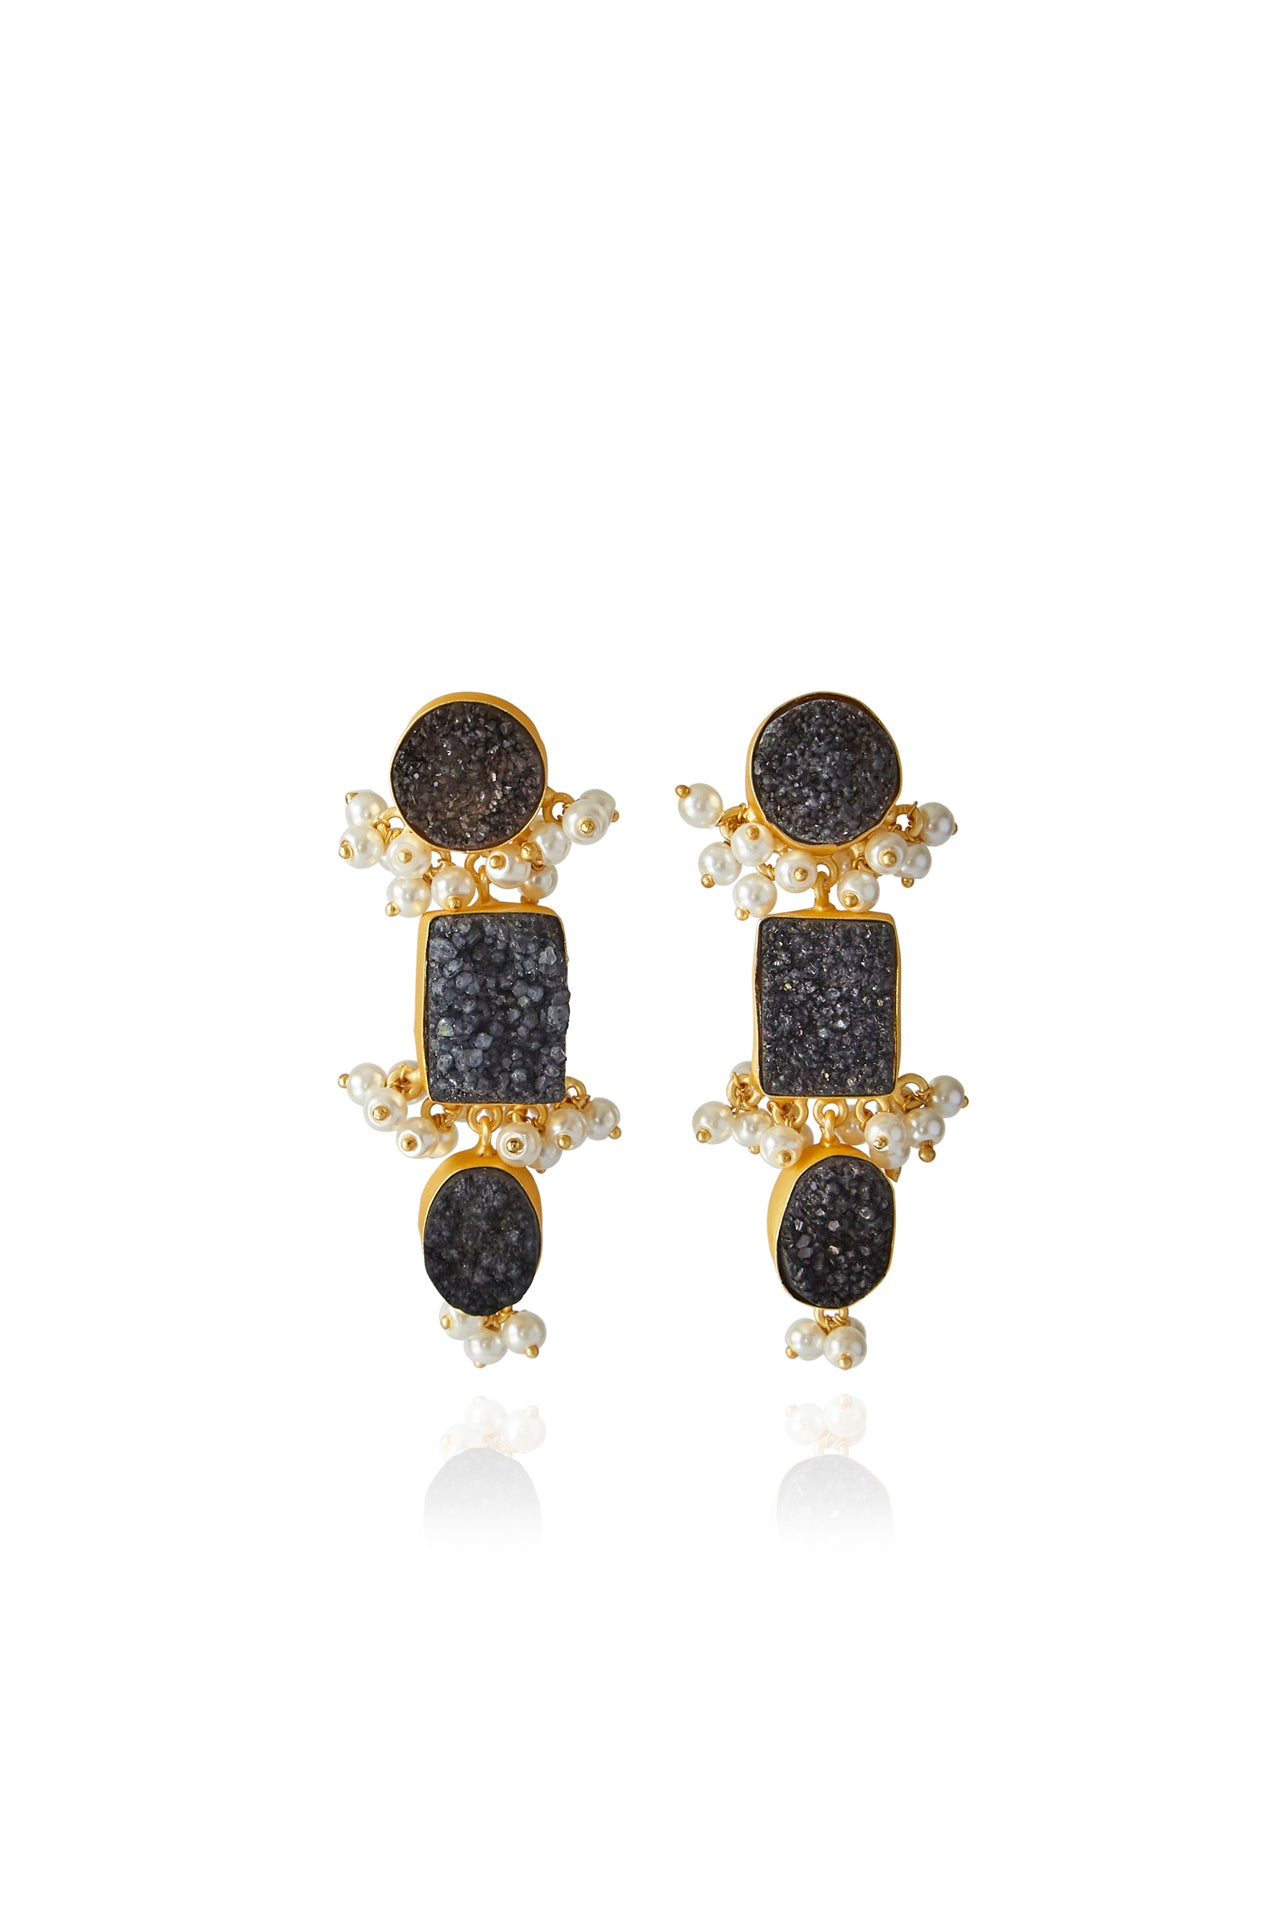 Mezanin Earrings